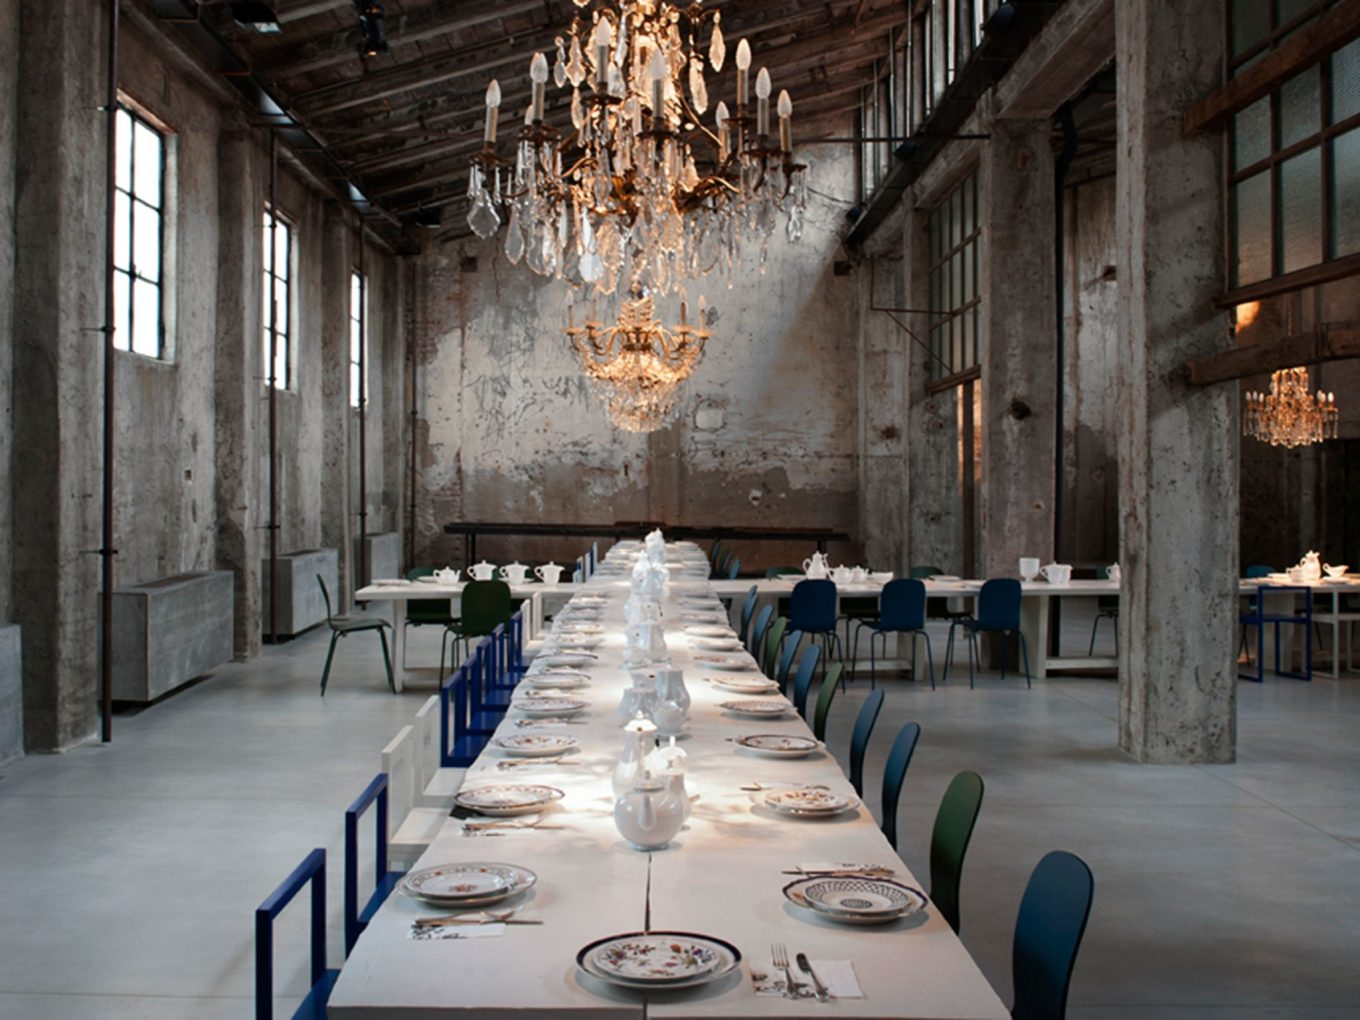 carlo and camilla milan design guide Milan Design Guide carlo camilla milan italy restaurant